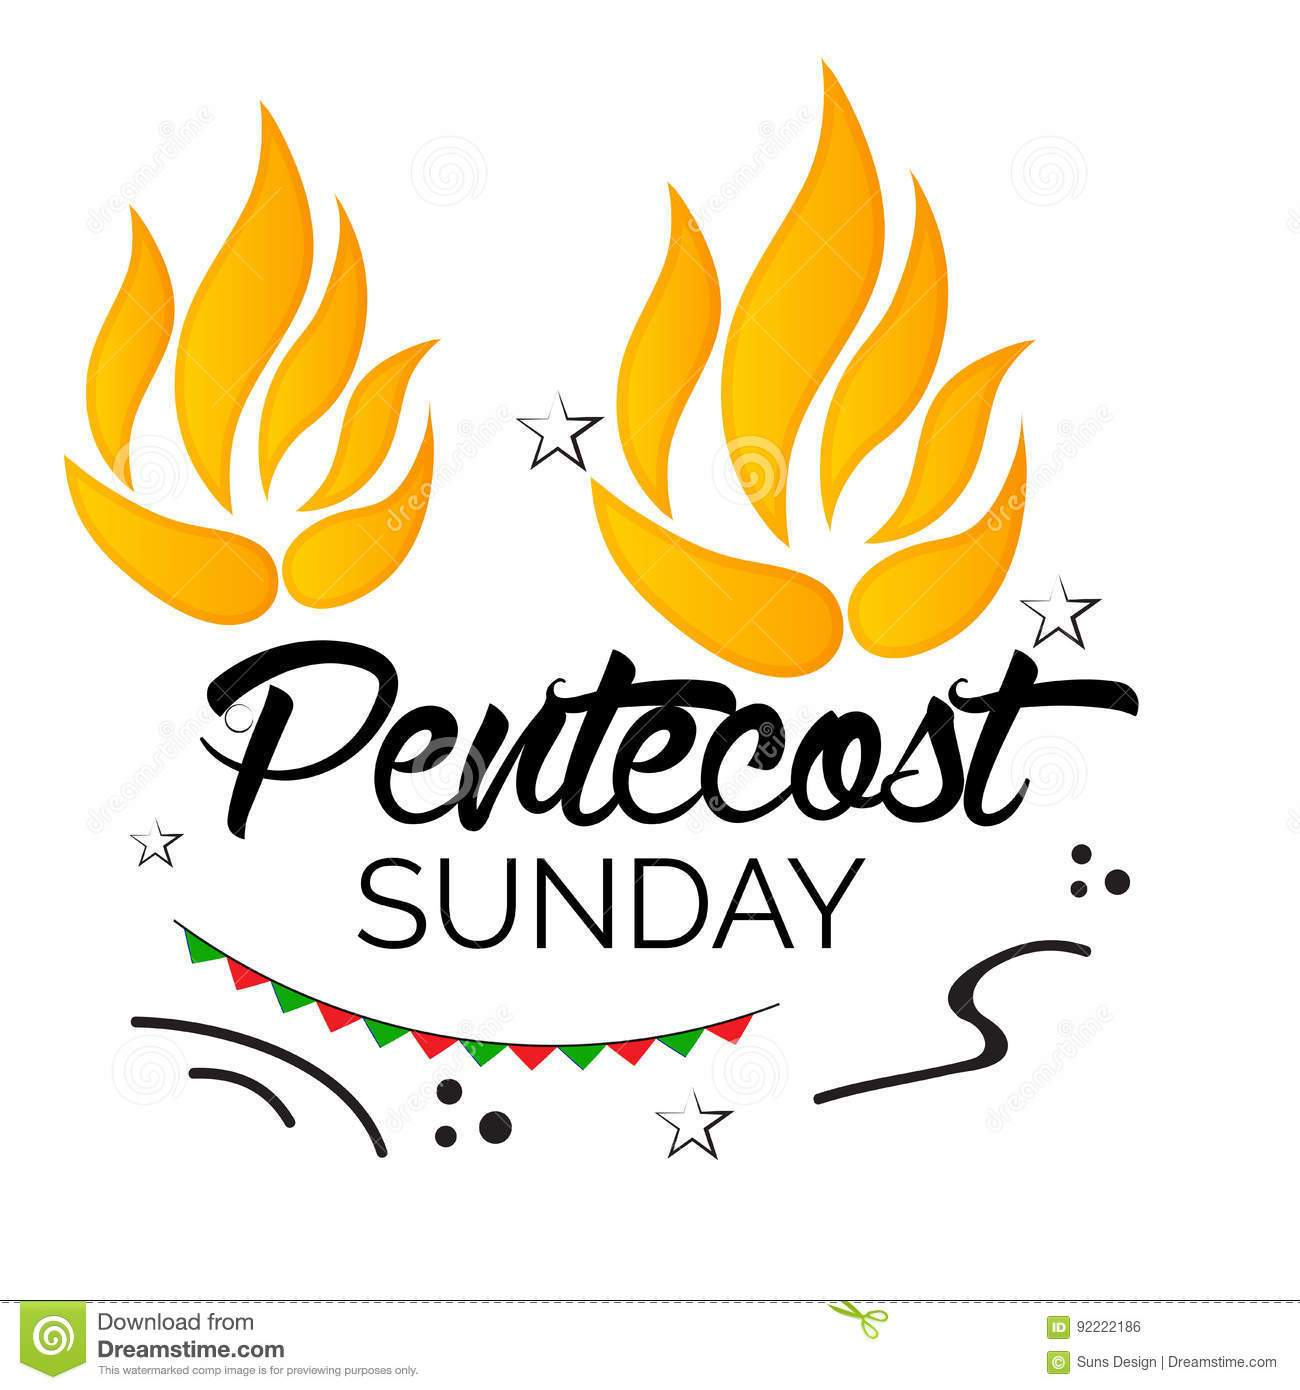 The day of pentecost clipart banner transparent download Clipart pentecost sunday 2 » Clipart Portal banner transparent download